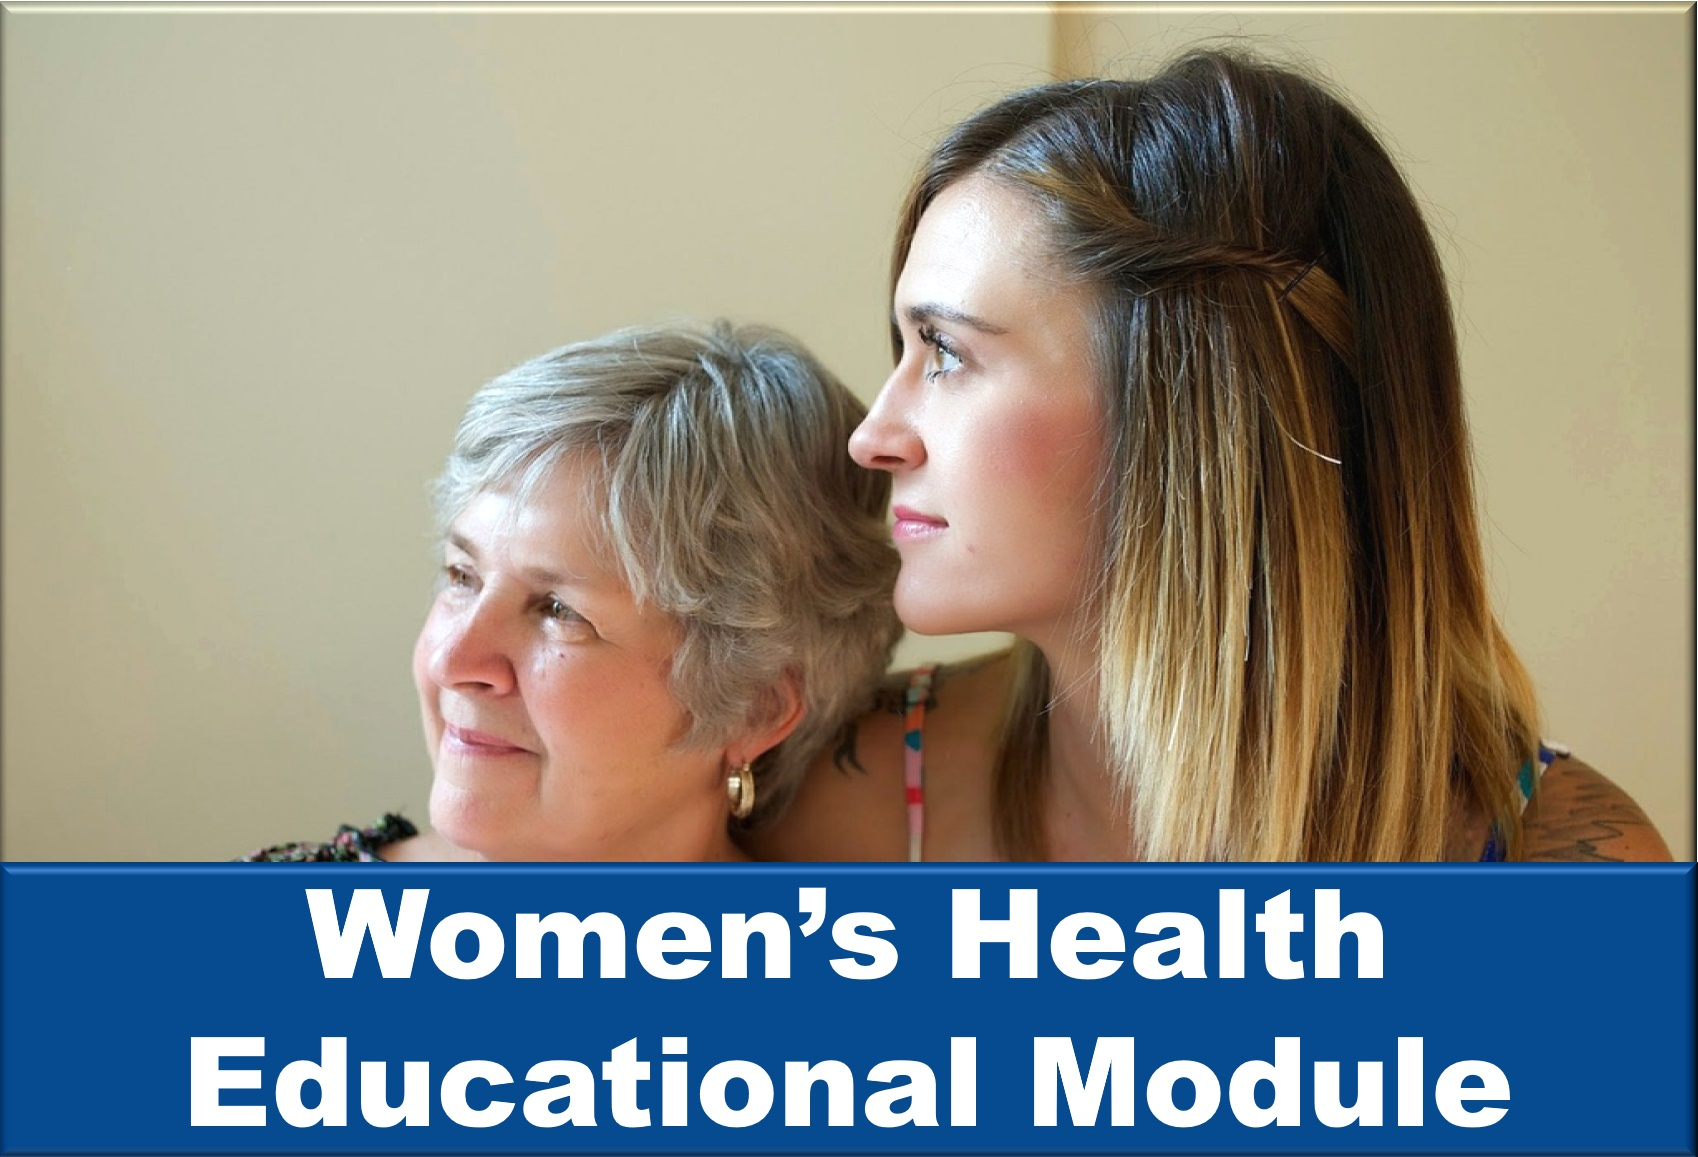 Women's Health Educational Module